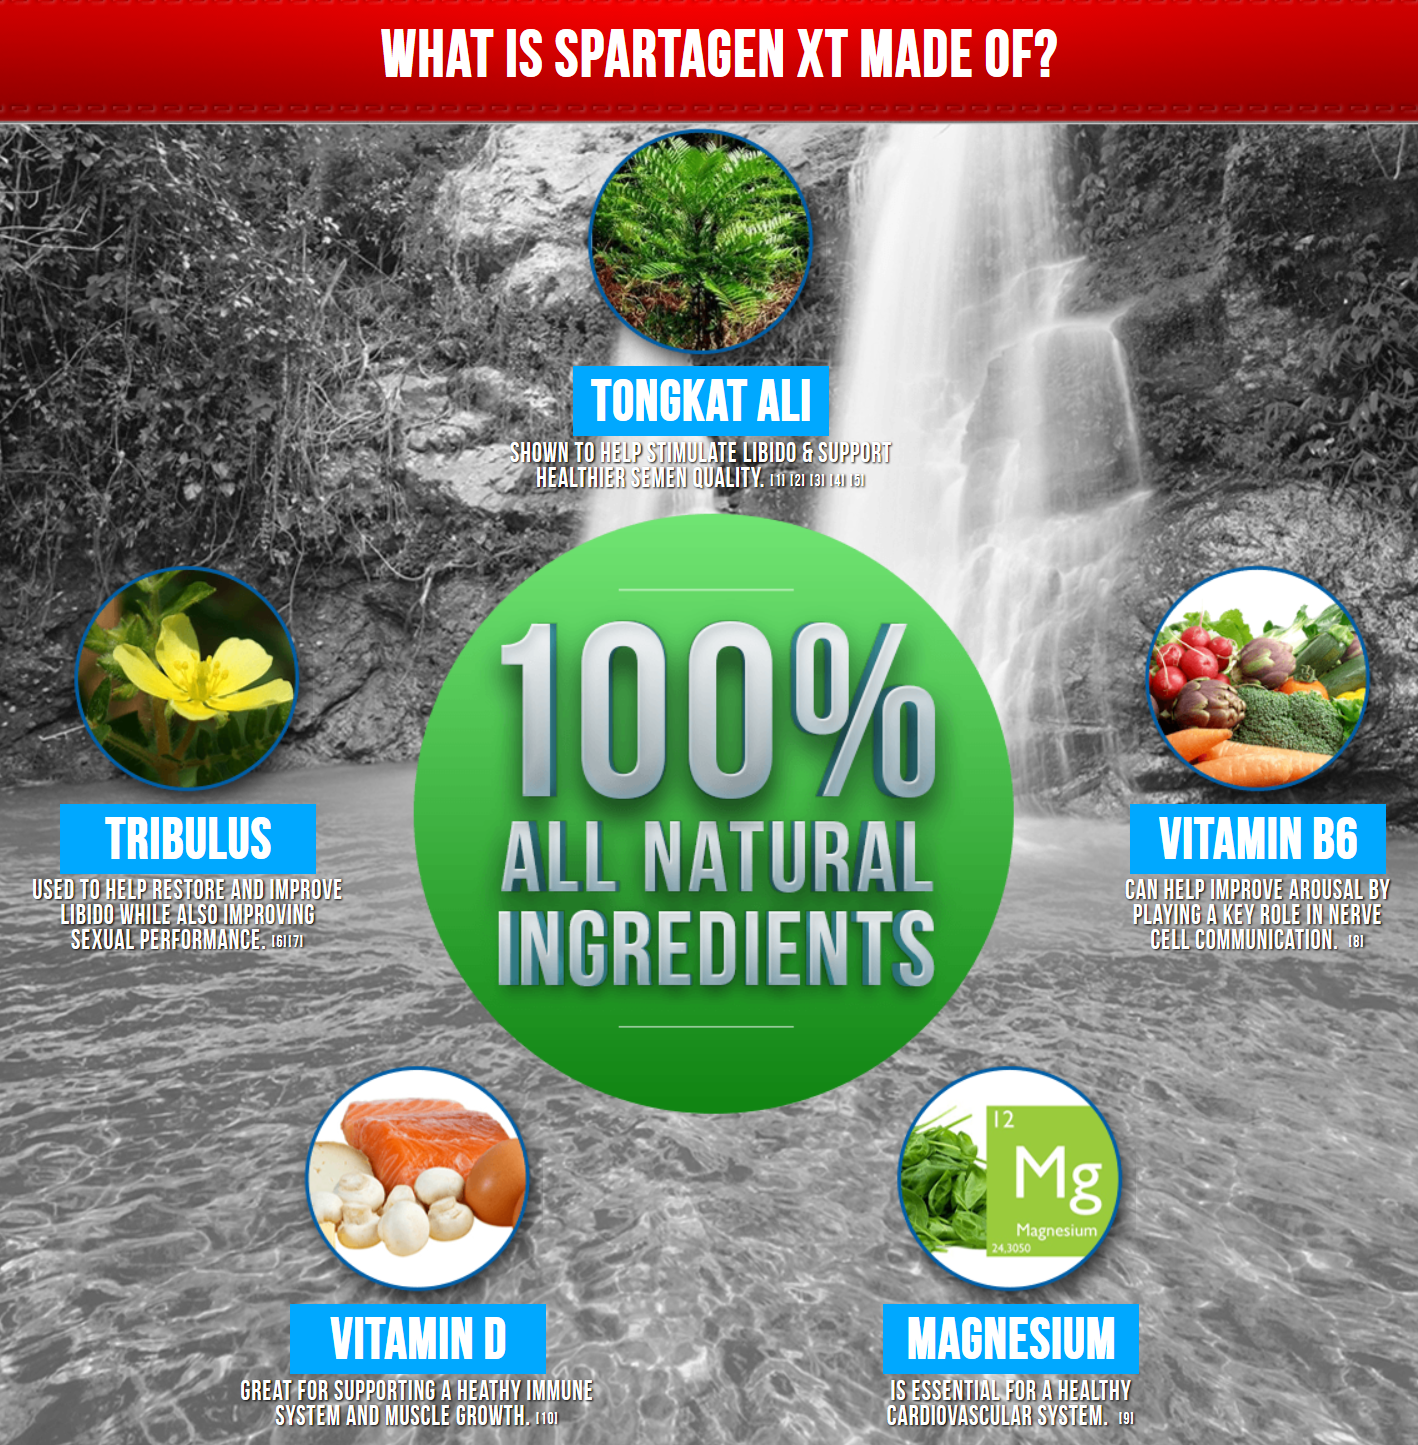 spartagen xt ingredients